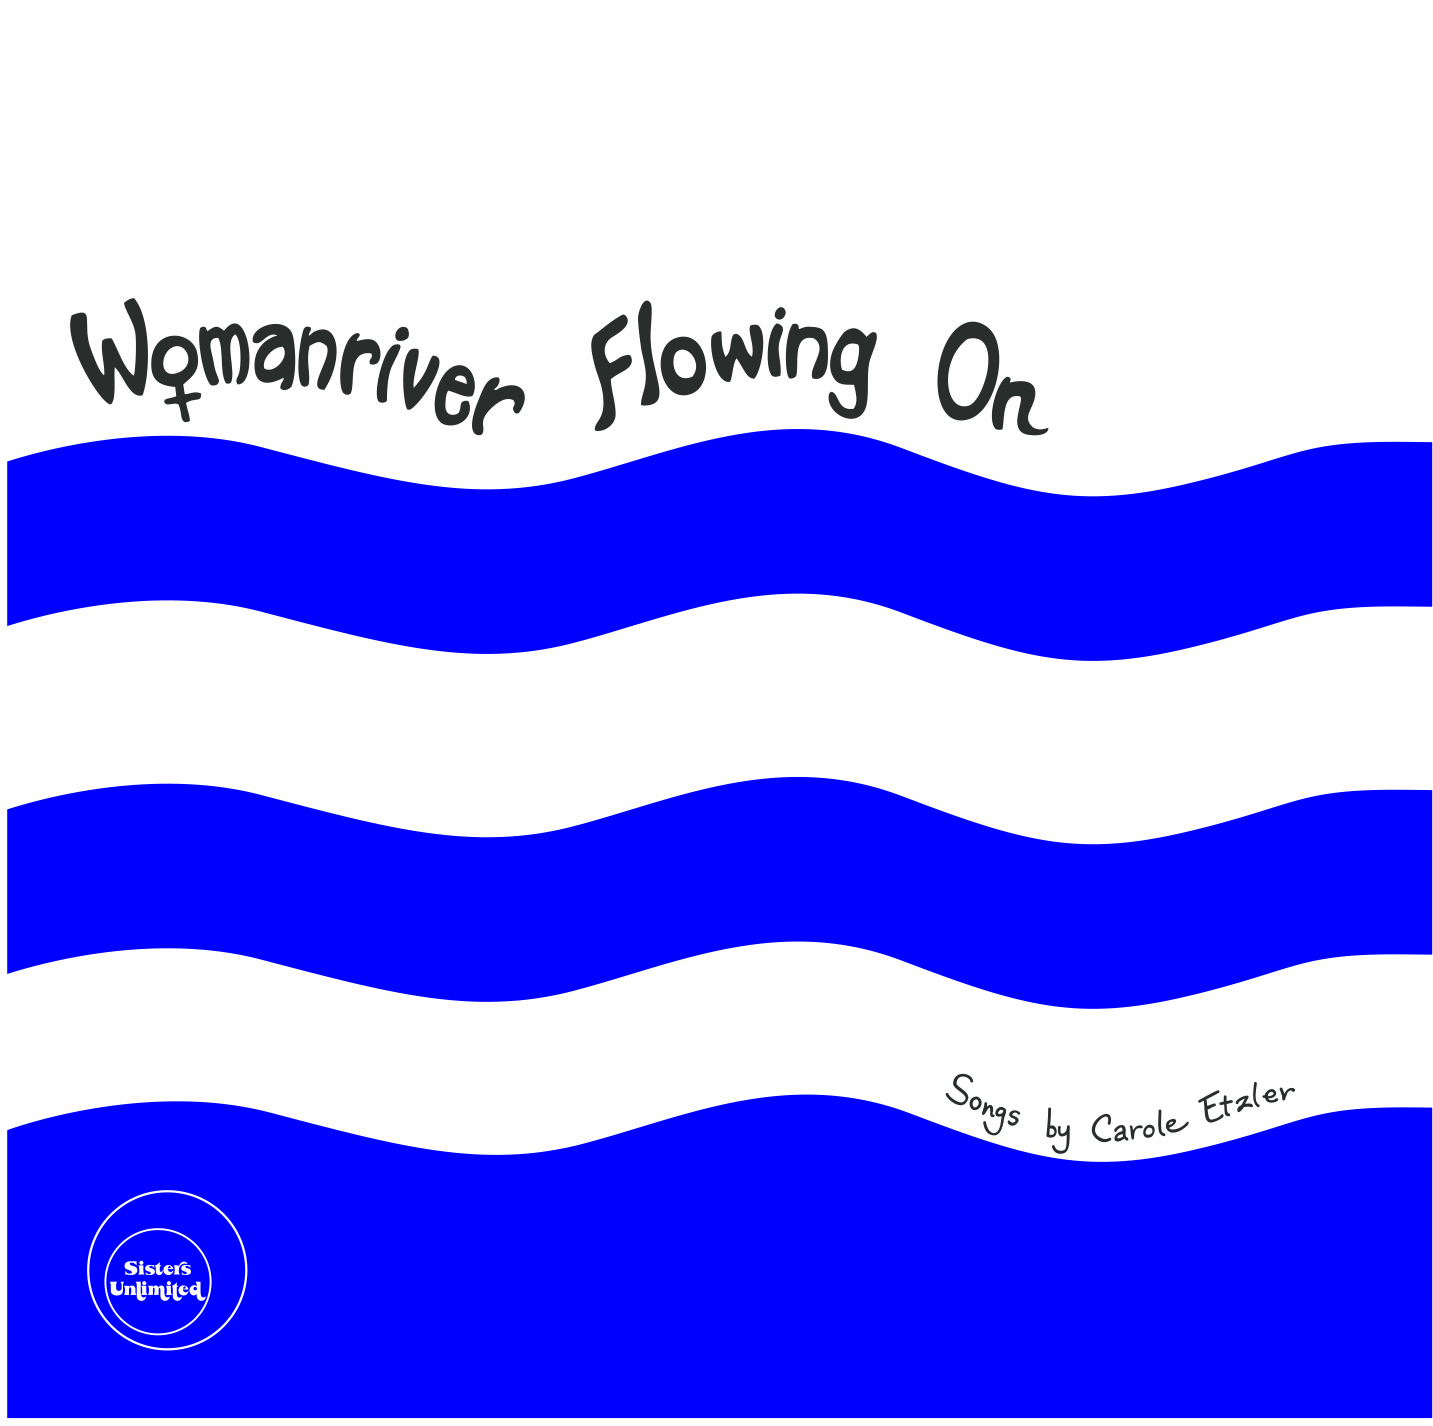 Womanriver Flowing On cover